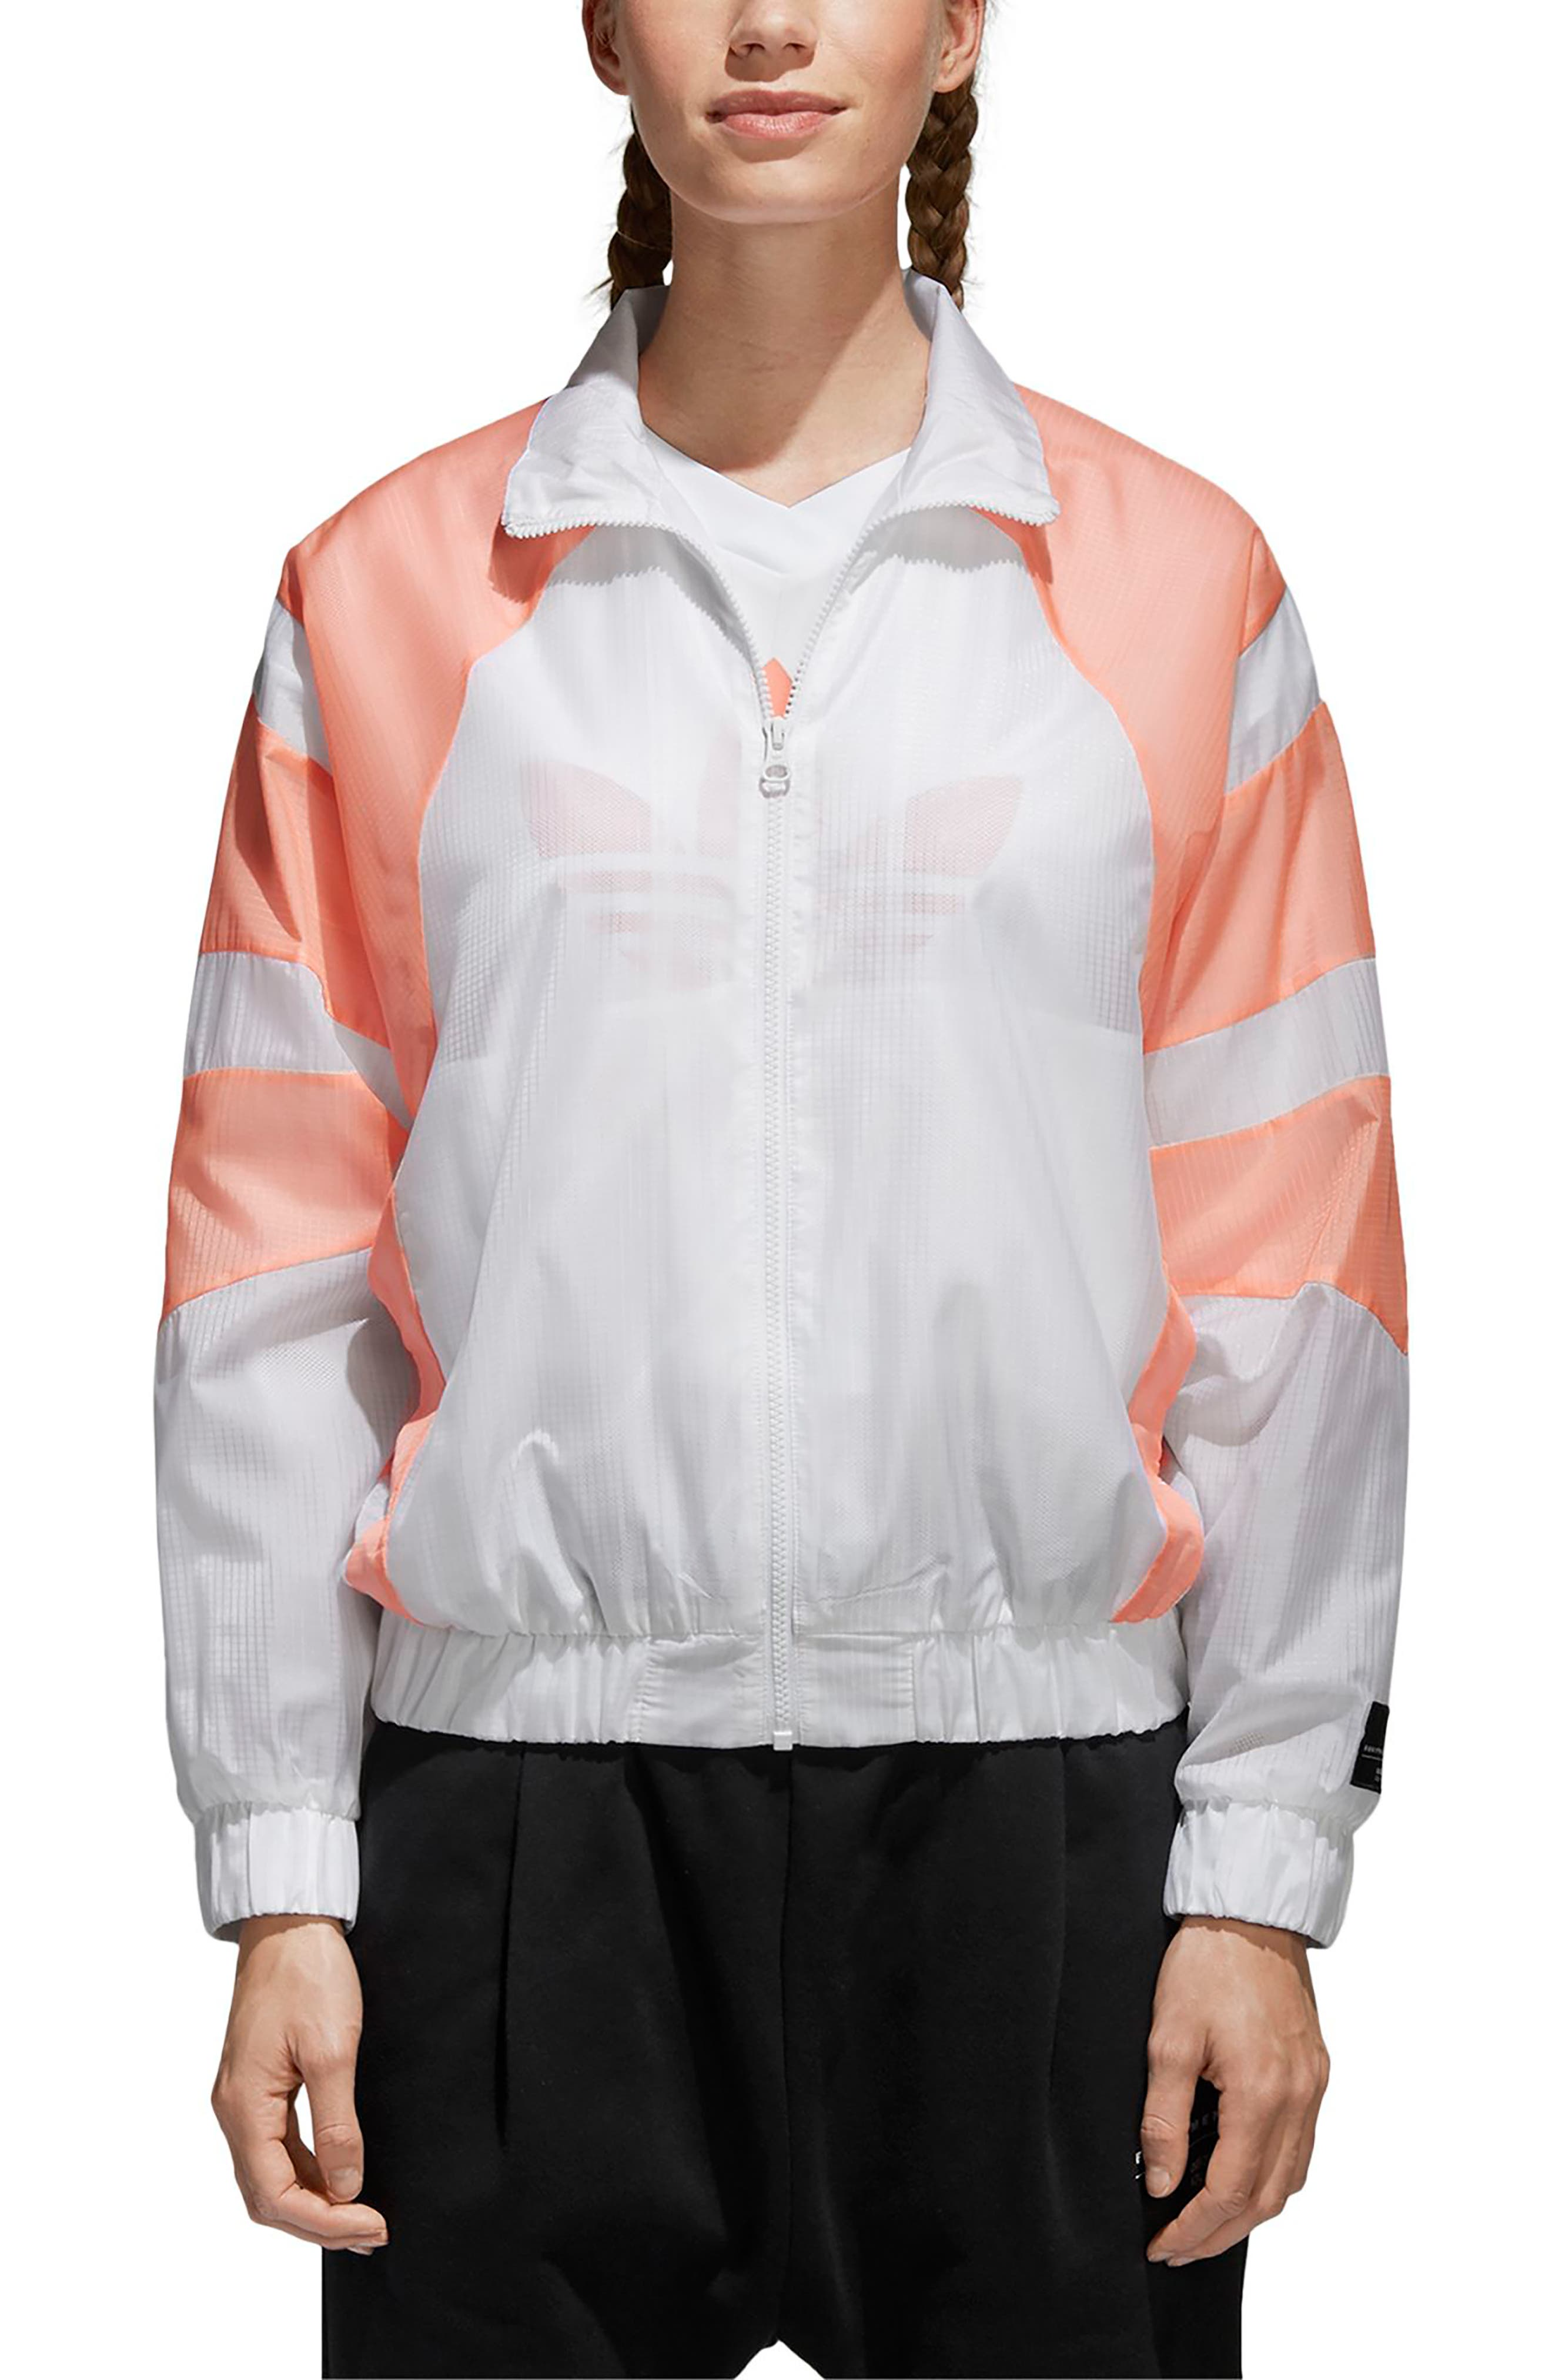 EQT Track Jacket,                         Main,                         color, White/ Chalk Coral